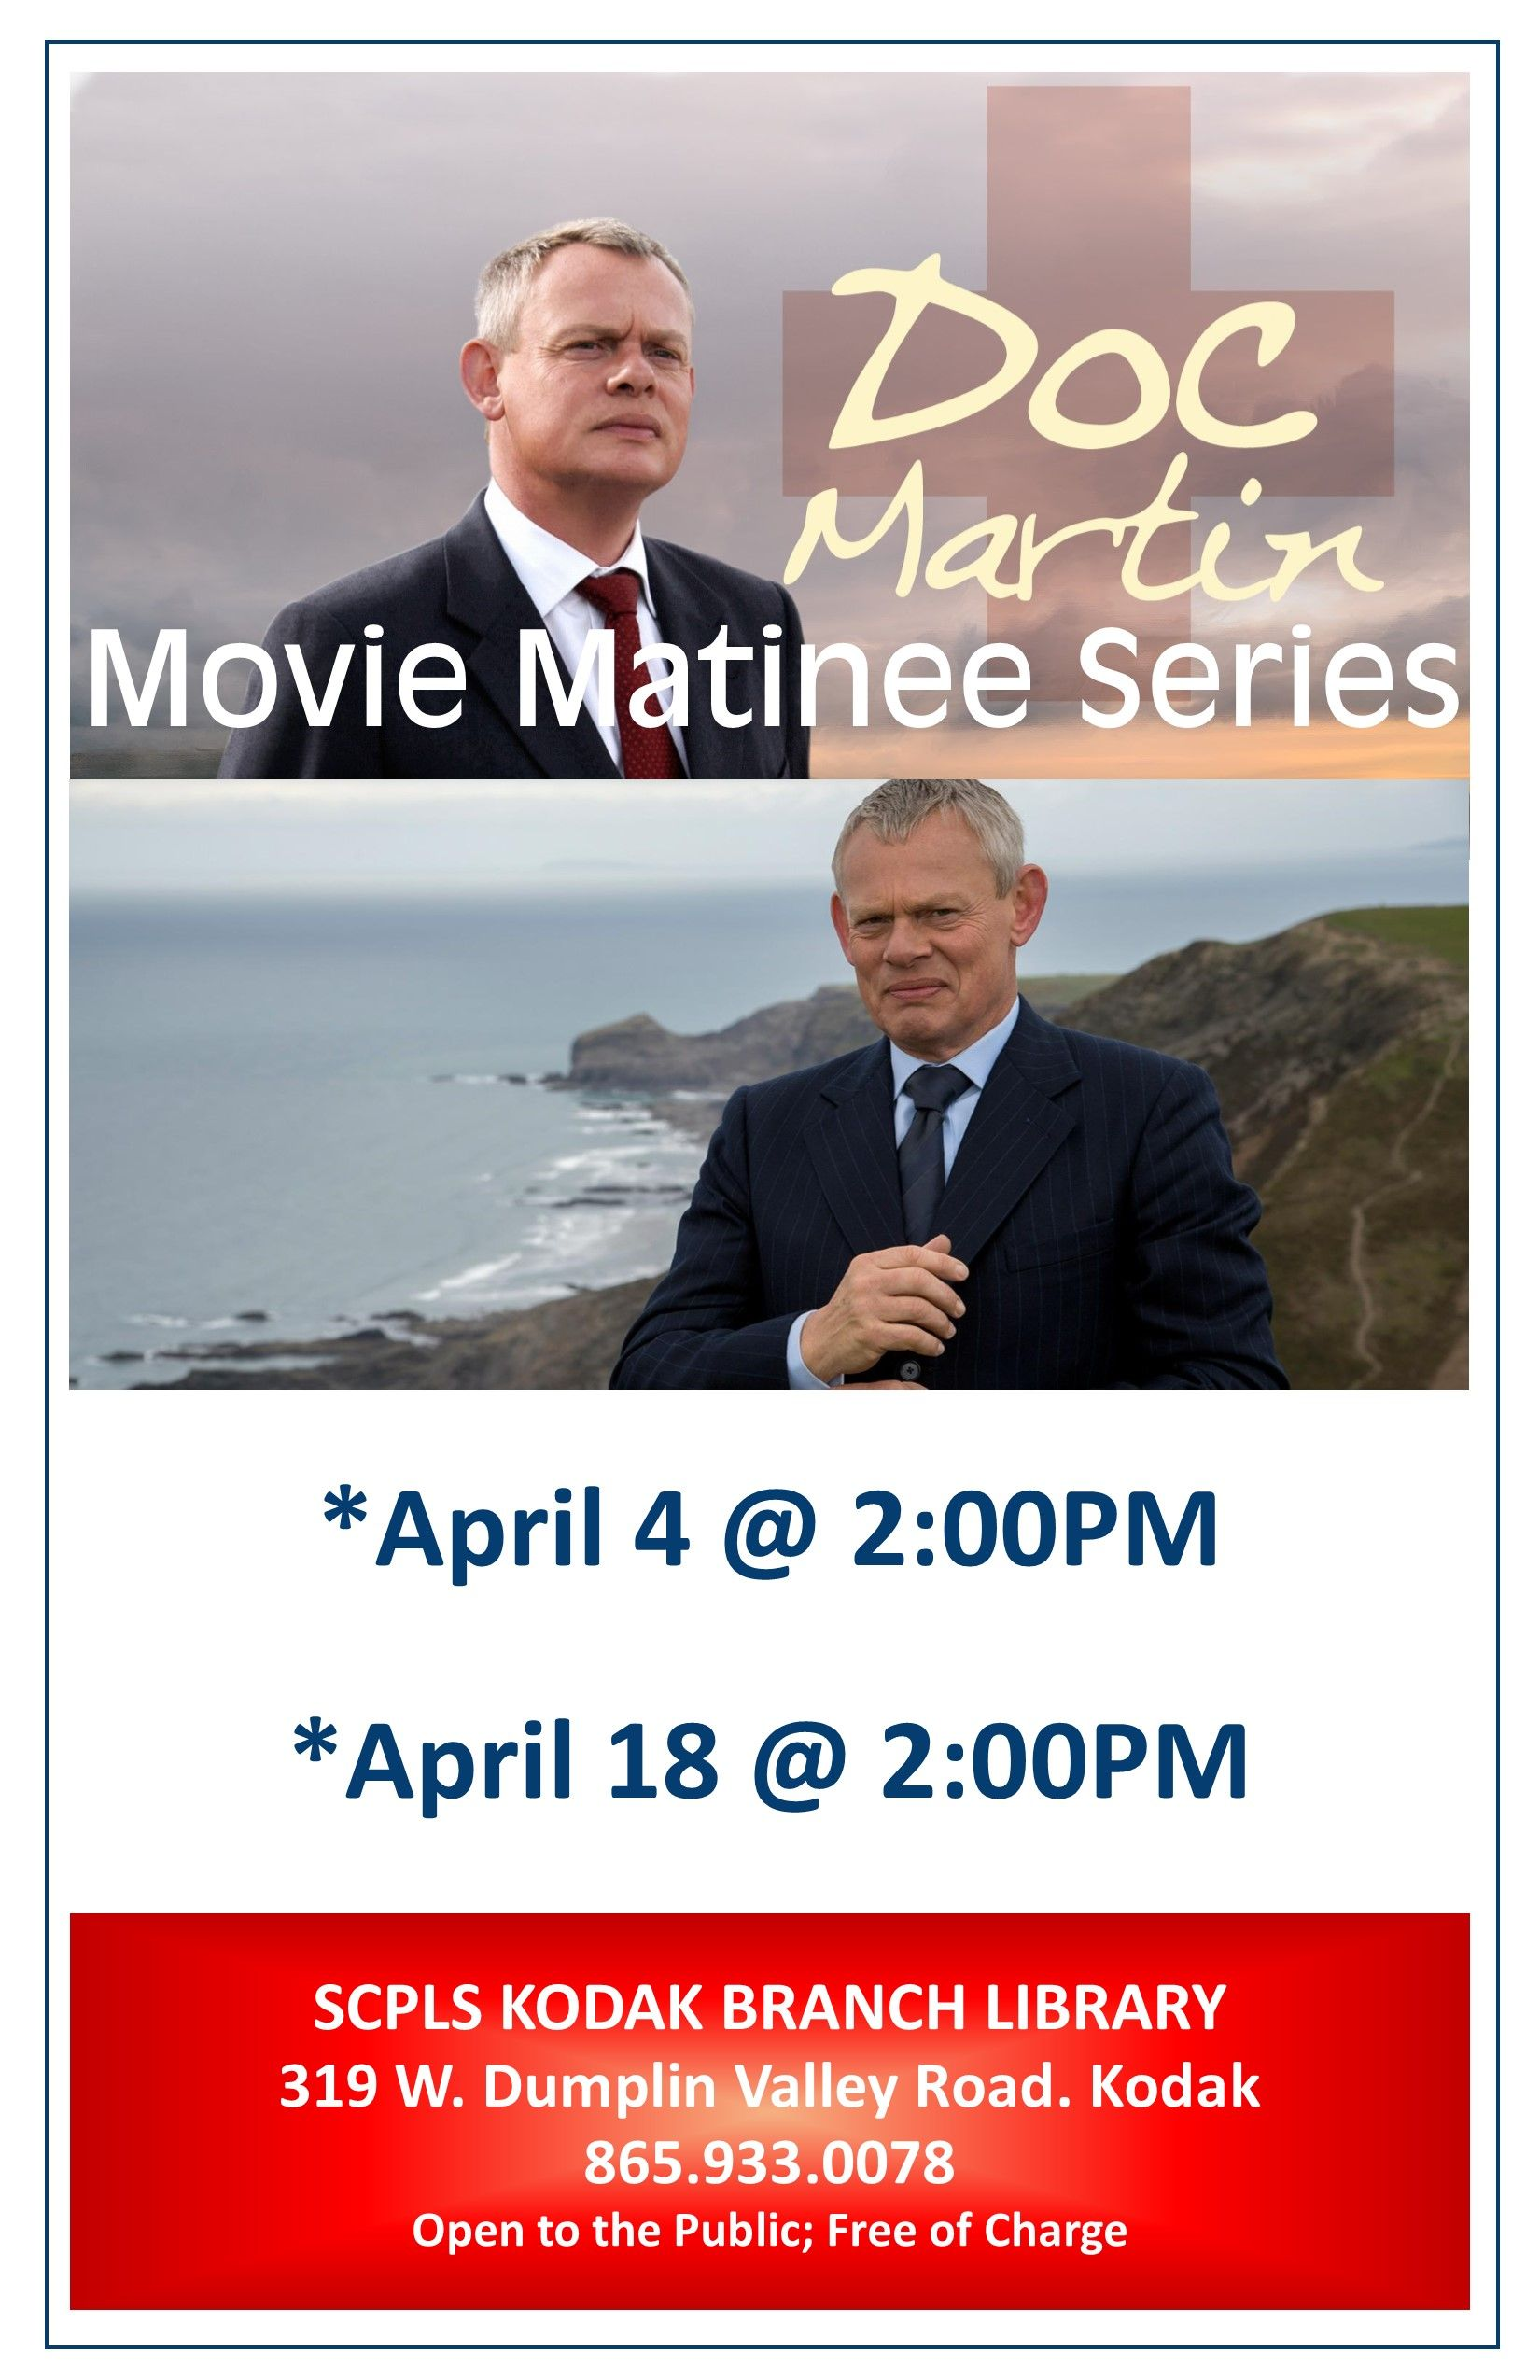 Doc Martin Movie Matinee Series - Kodak Branch Library | 411